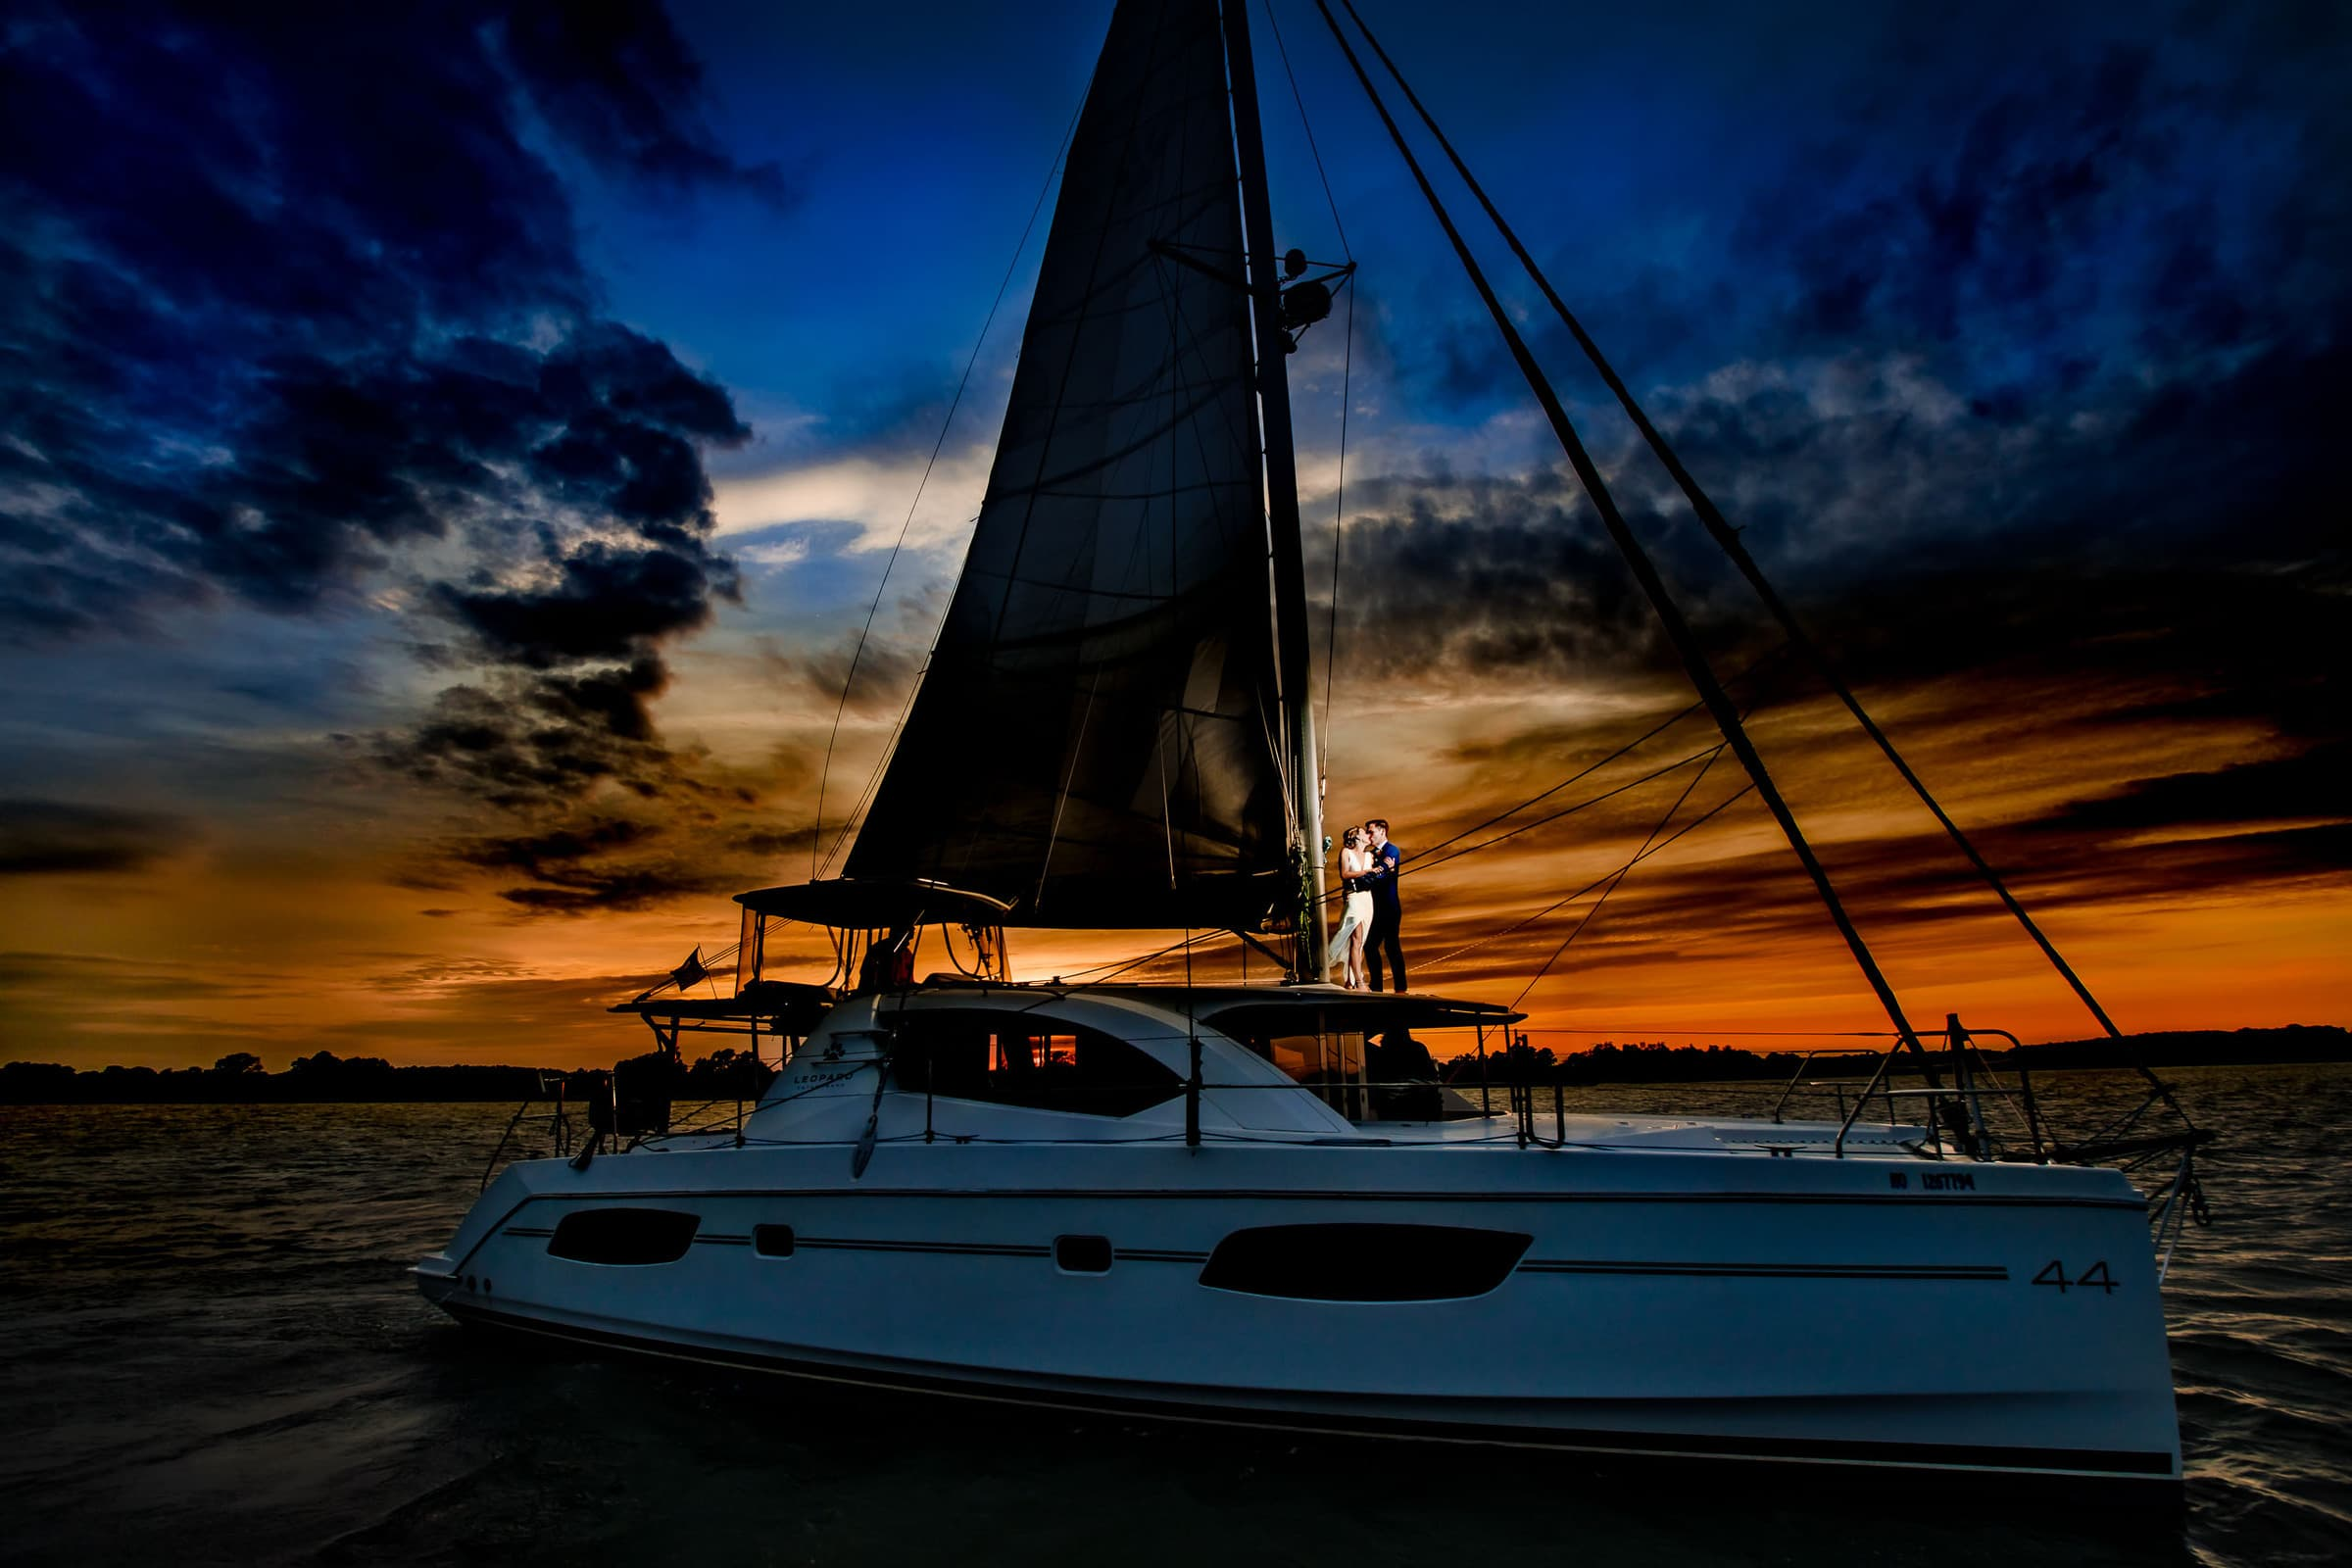 Bride and Groom beautifully lit up on a catamaran at sunset in Chesapeake Bay Maryland